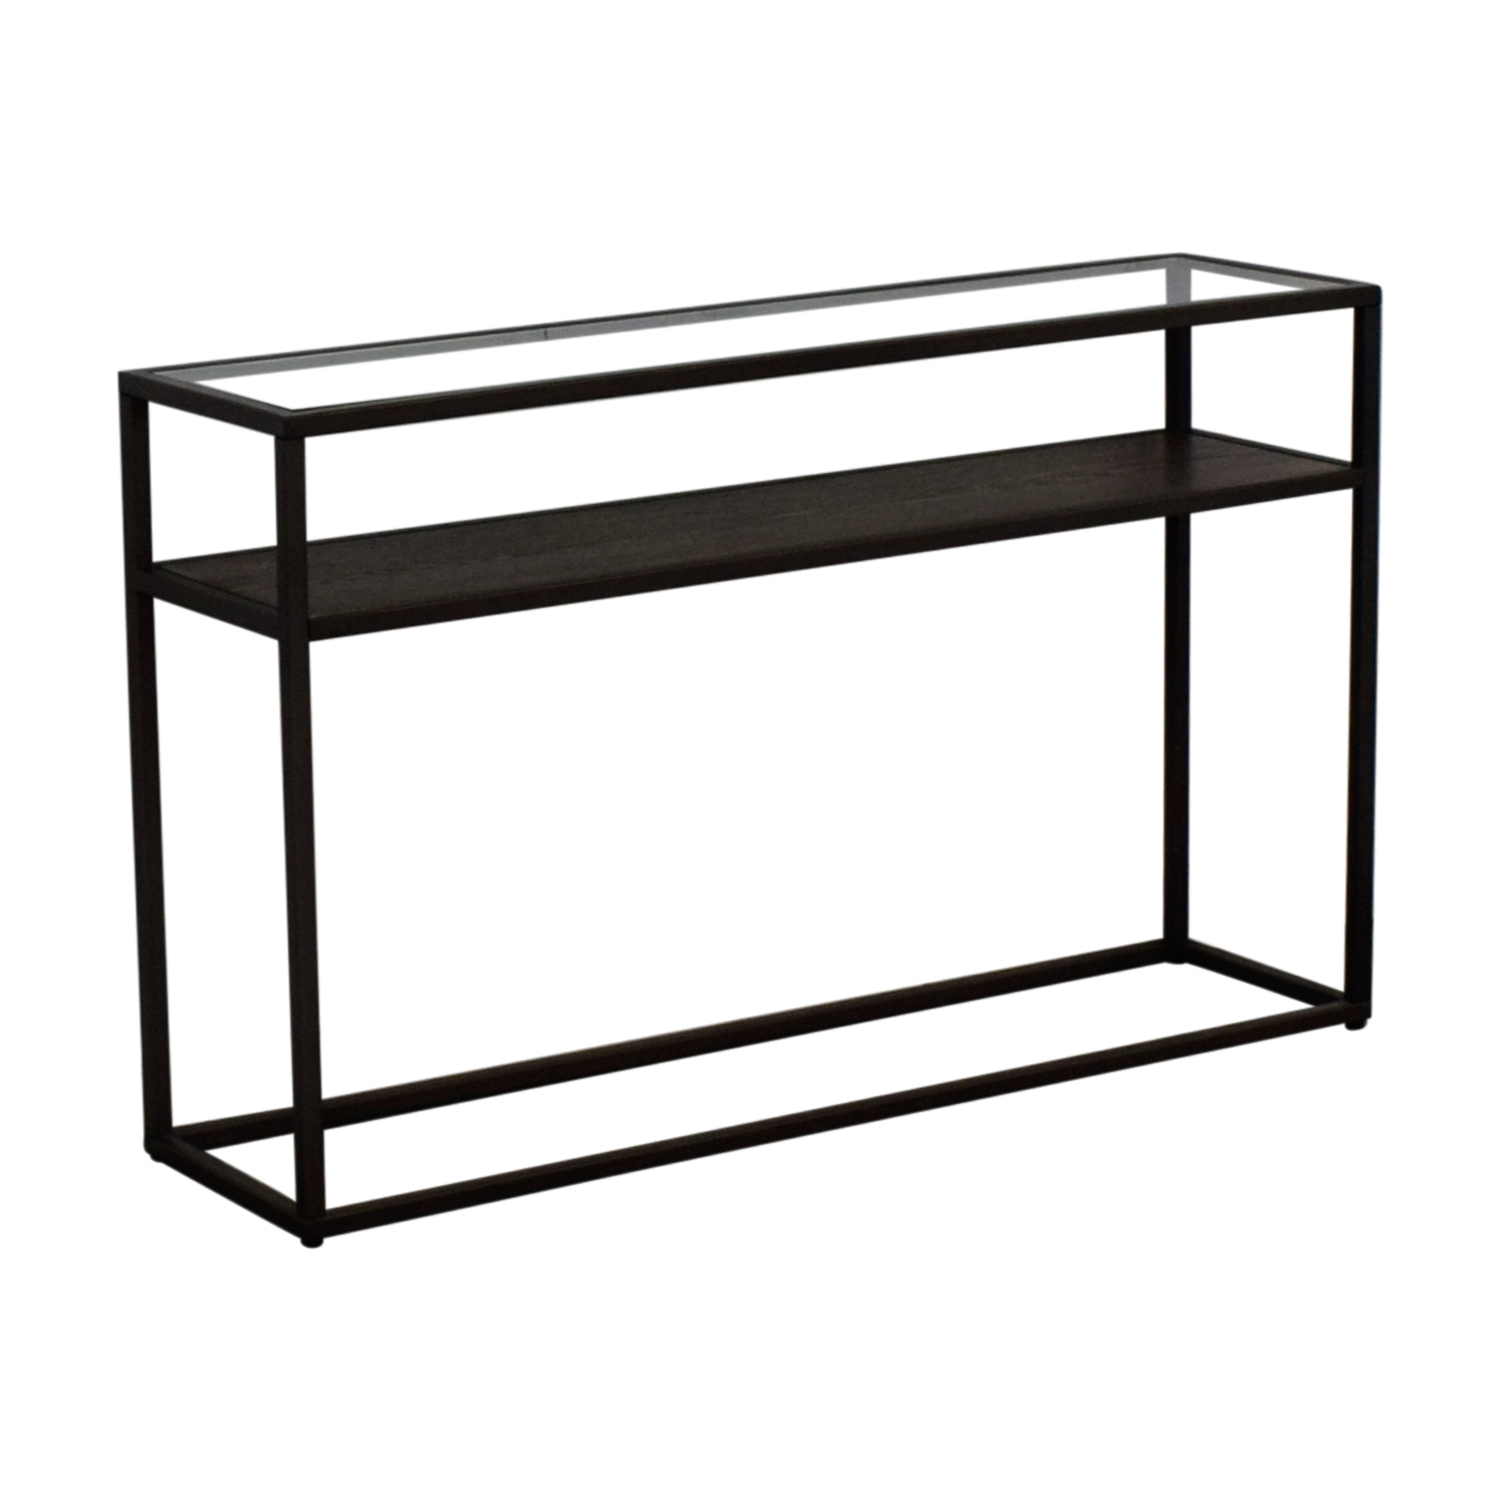 Crate & Barrel Switch Glass Wood And Metal Console Table Pertaining To Switch Console Tables (View 4 of 30)